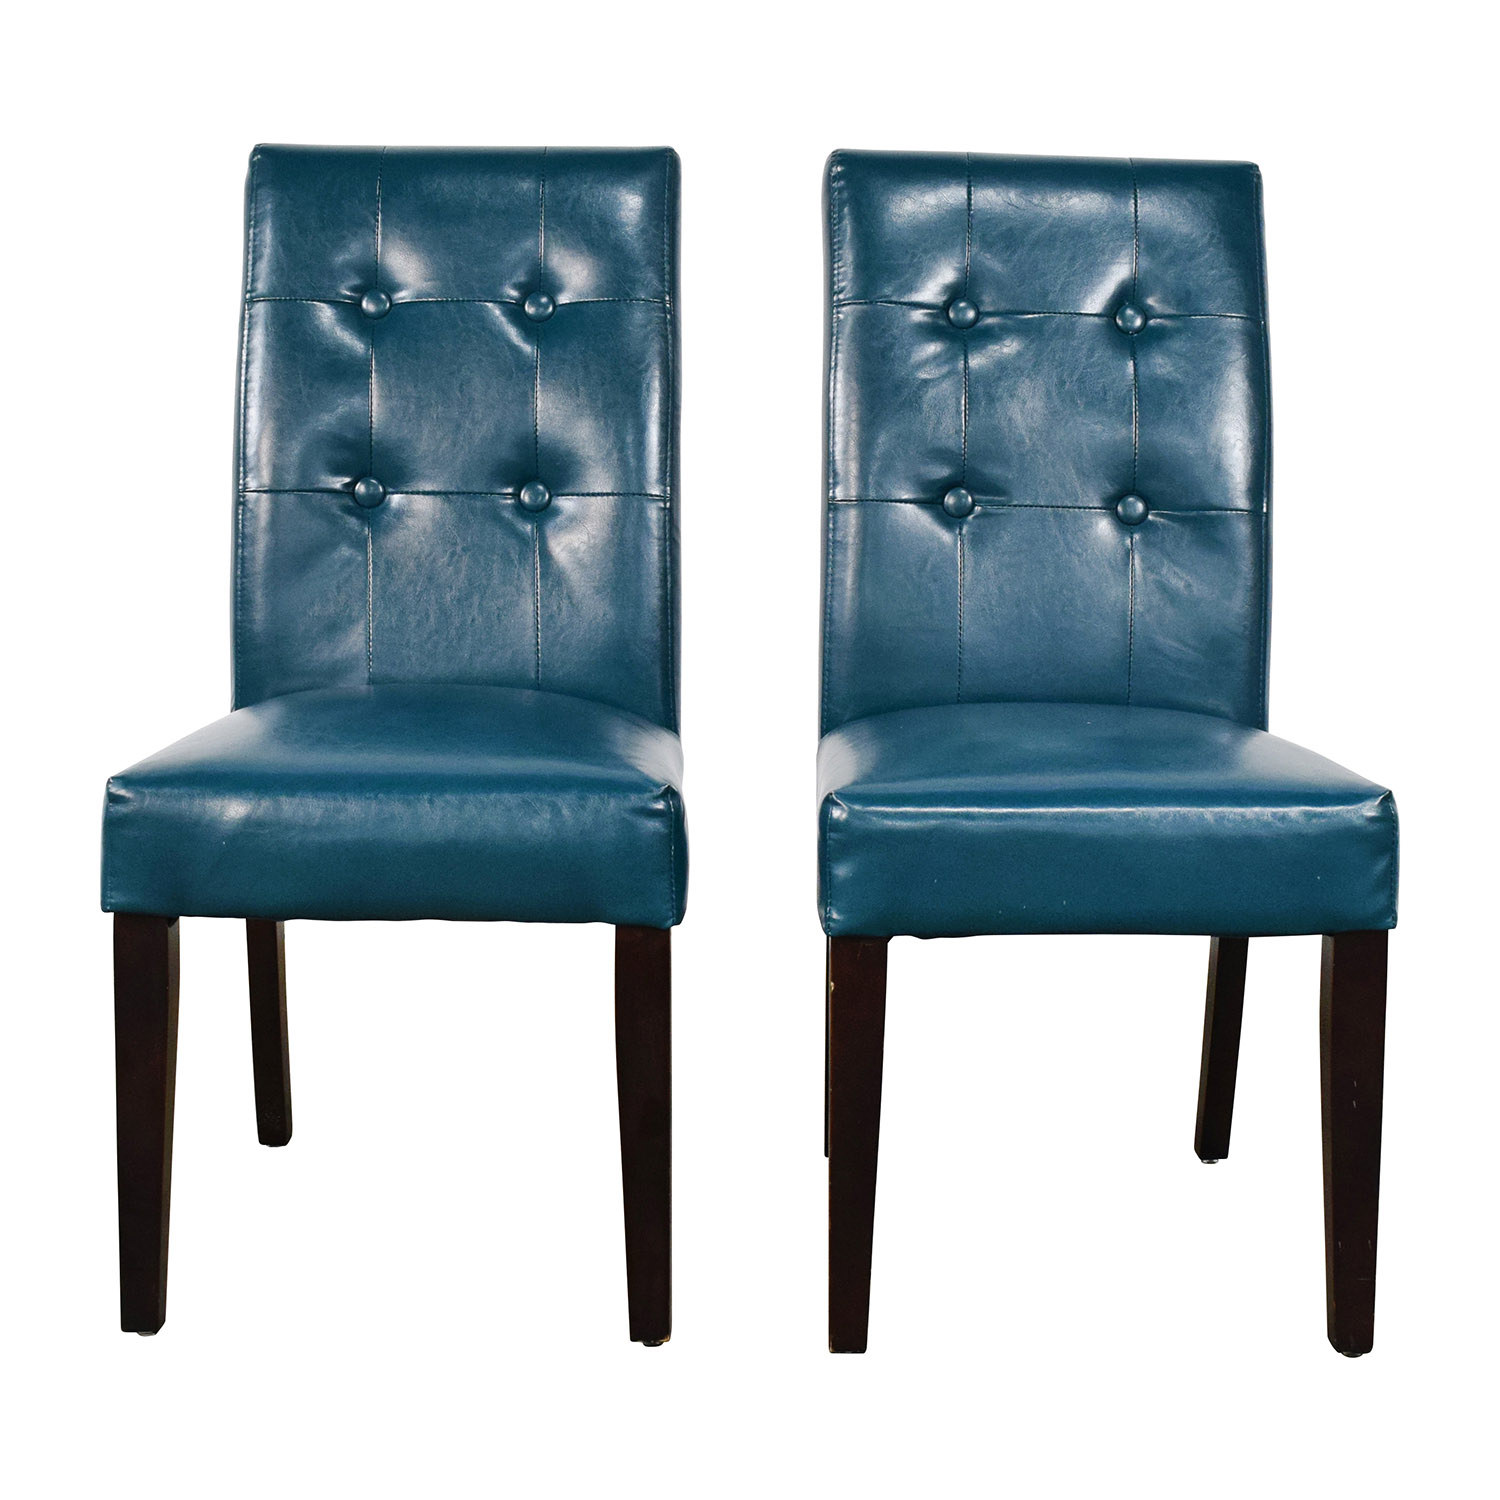 Pier 1 Imports Pir 1 Imports Mason Collection Teal Dining Chairs